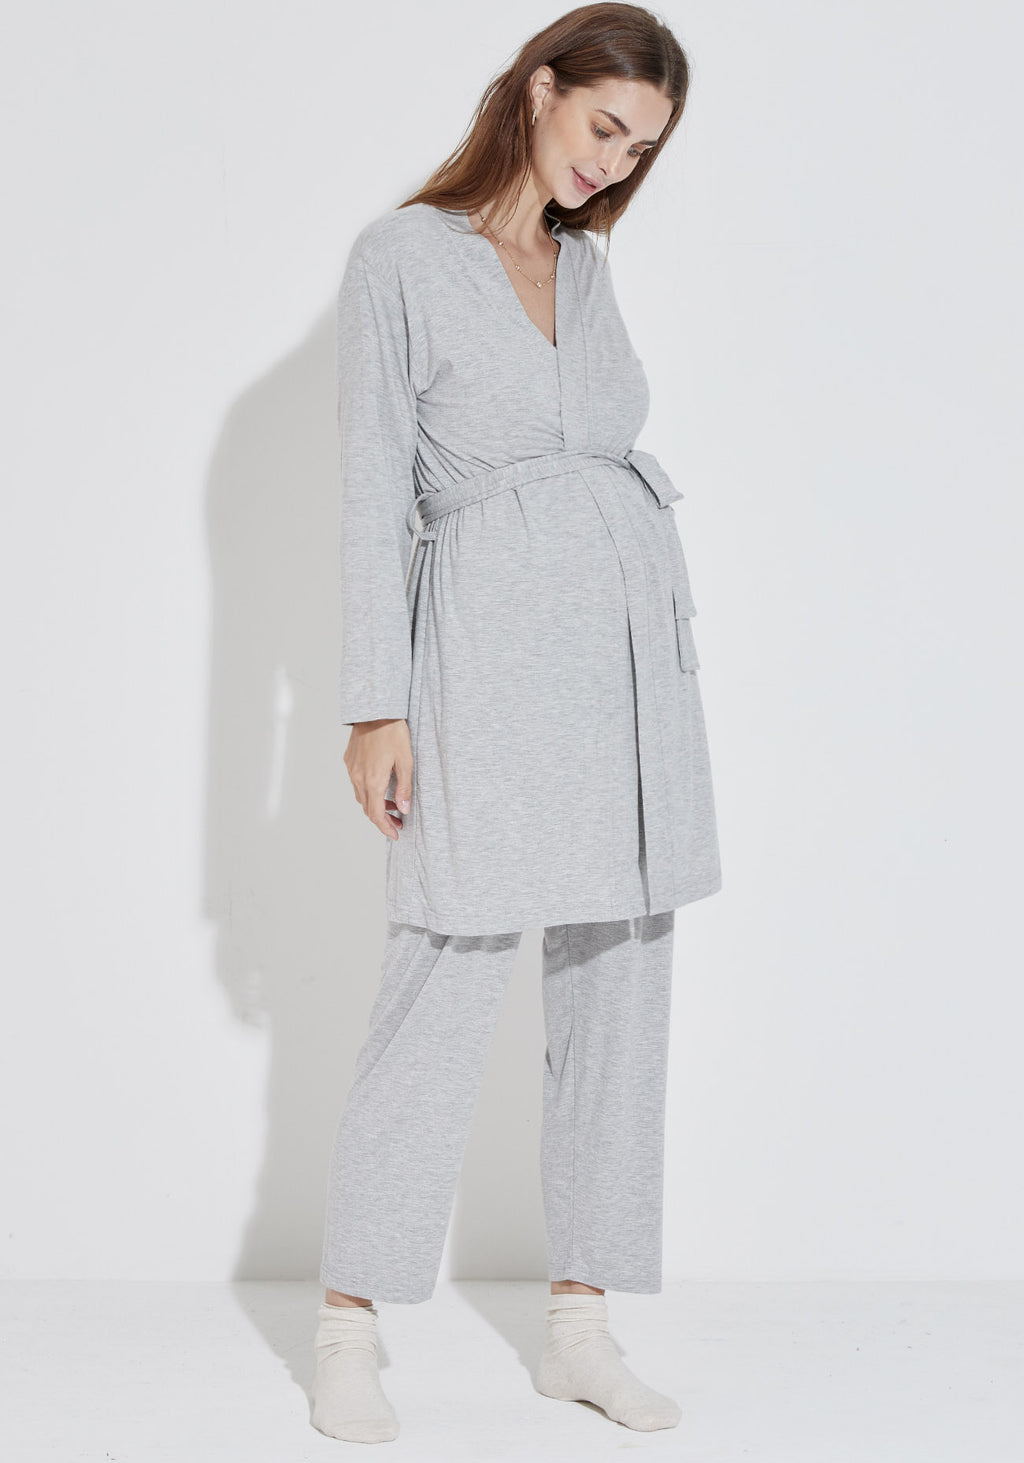 BAMBOO SOFT HOSPITAL PJ SET